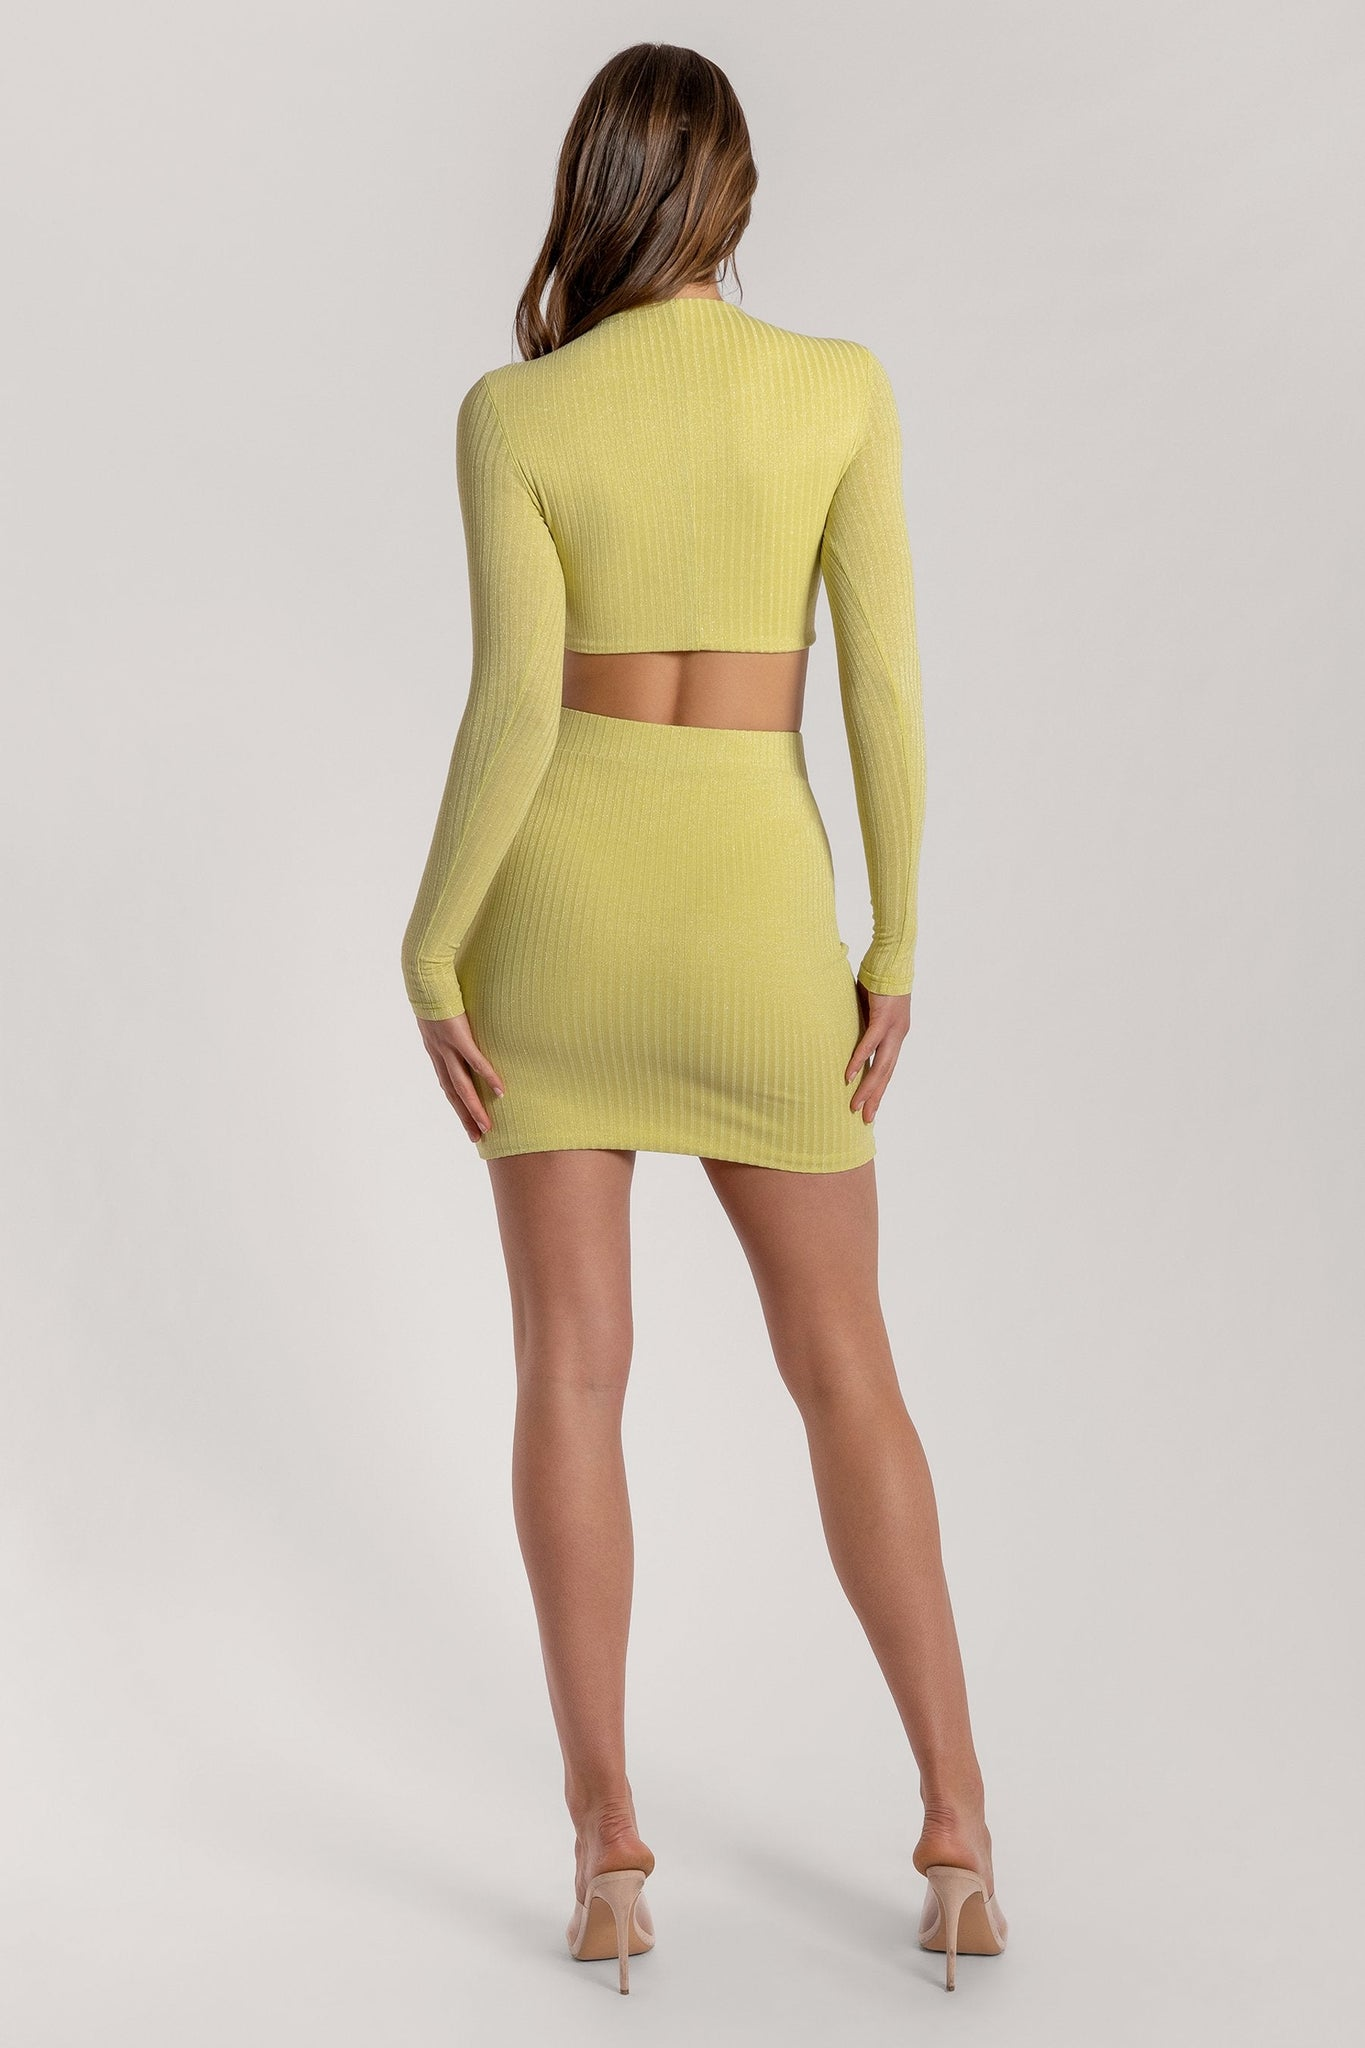 Iliana Shimmer Rib Mini Skirt - Lemon - MESHKI